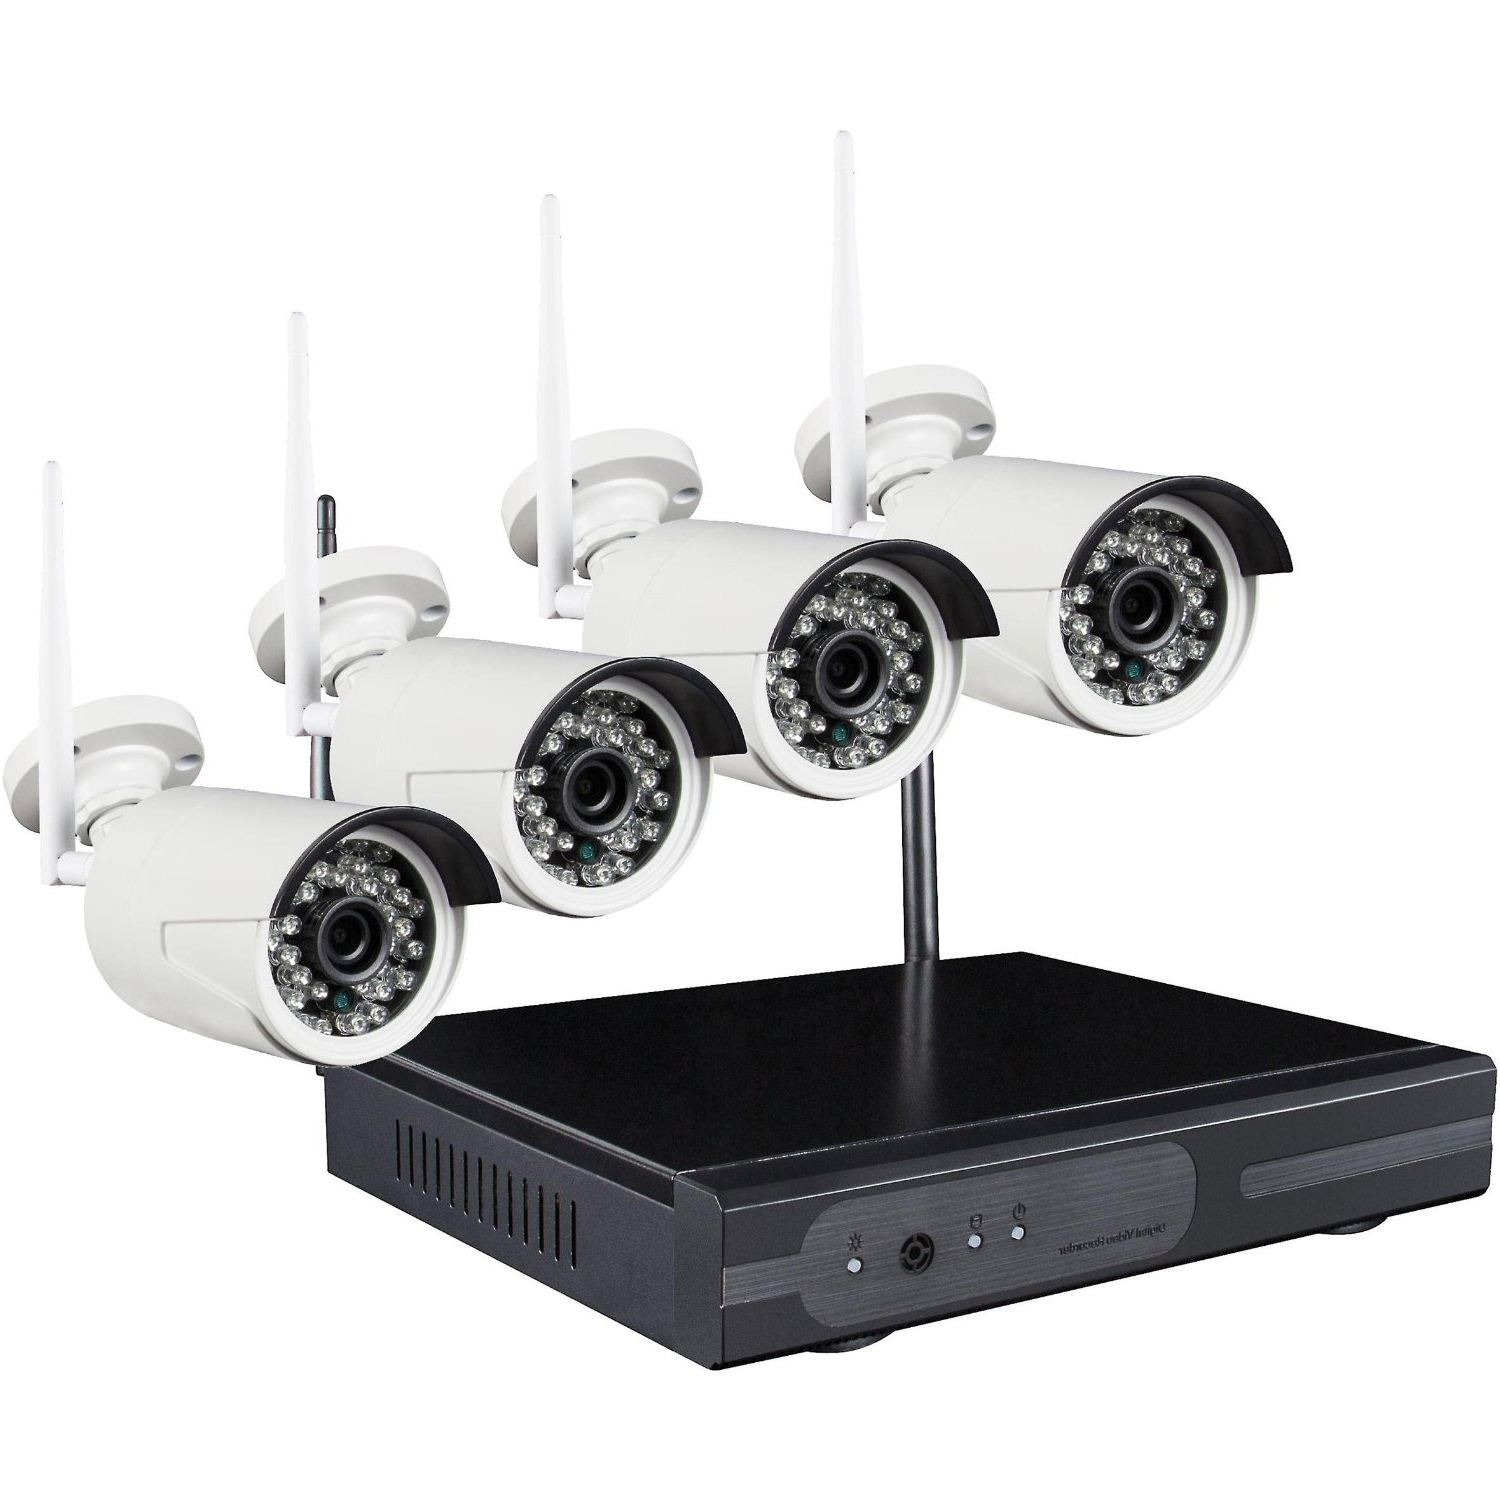 image-624745-Spyclops_SPYNVR4720W_Wireless_HD_Camera_4_channel_System_video_surveillance_kit_with_DVR.jpg